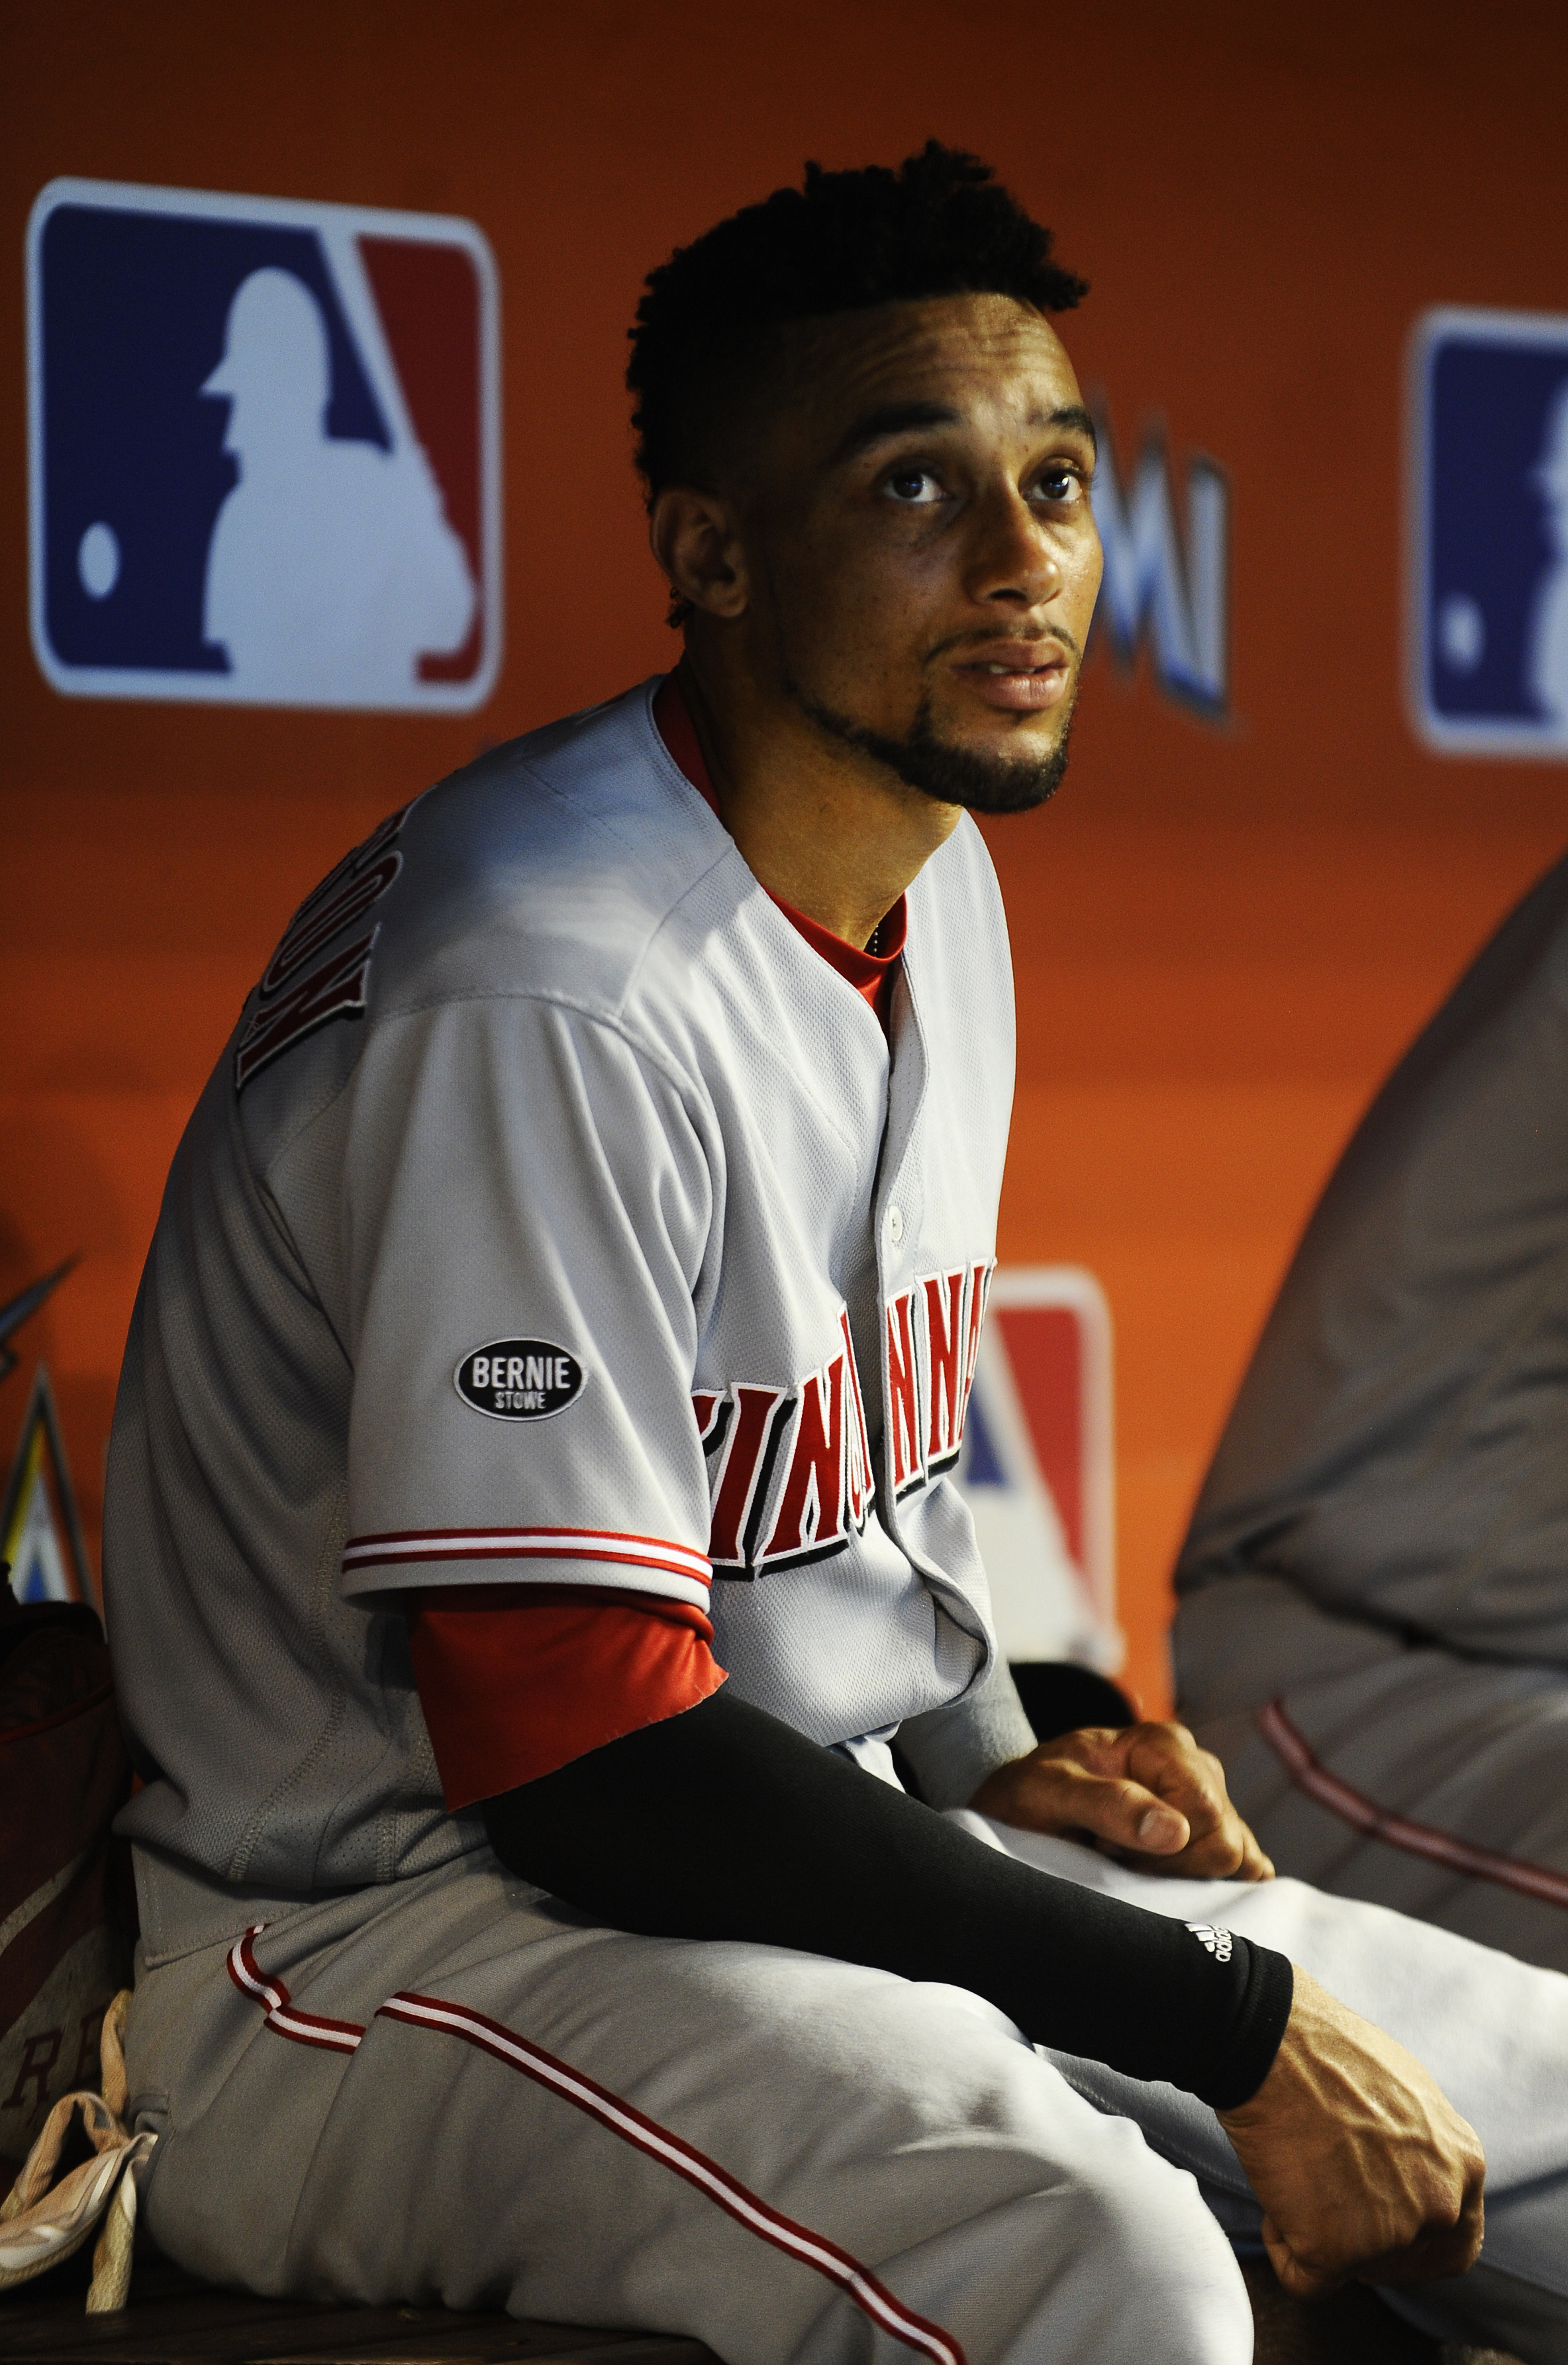 Cincinnati Reds center fielder Billy Hamilton (6) takes a look at the scoreboard while in the dugout during their game against the Miami Marlins at Marlins Stadium on July 10, 2016.